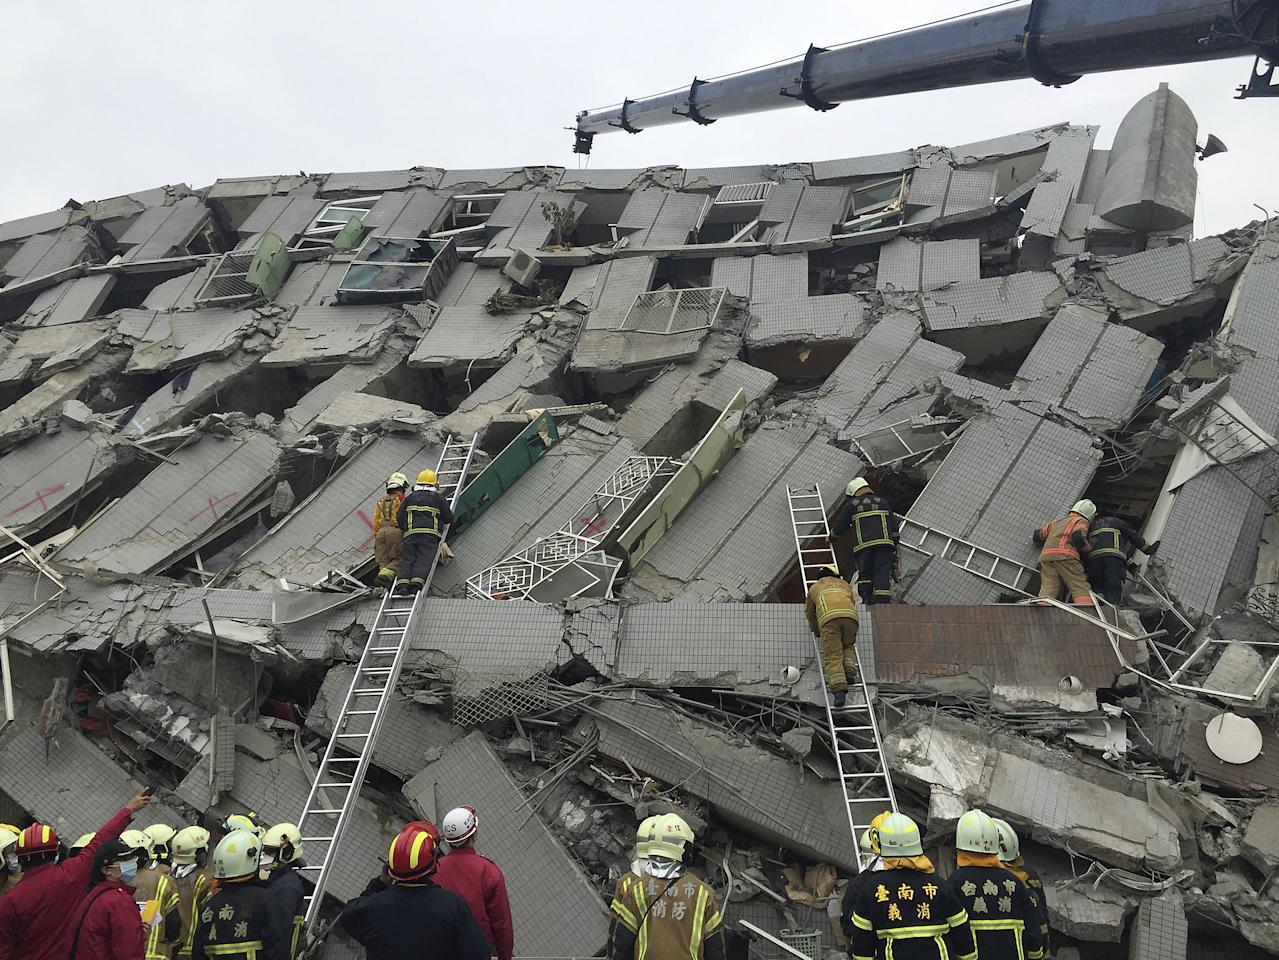 Rescue personnel work at the site where a 17 story apartment building collapsed from an earthquake in Tainan